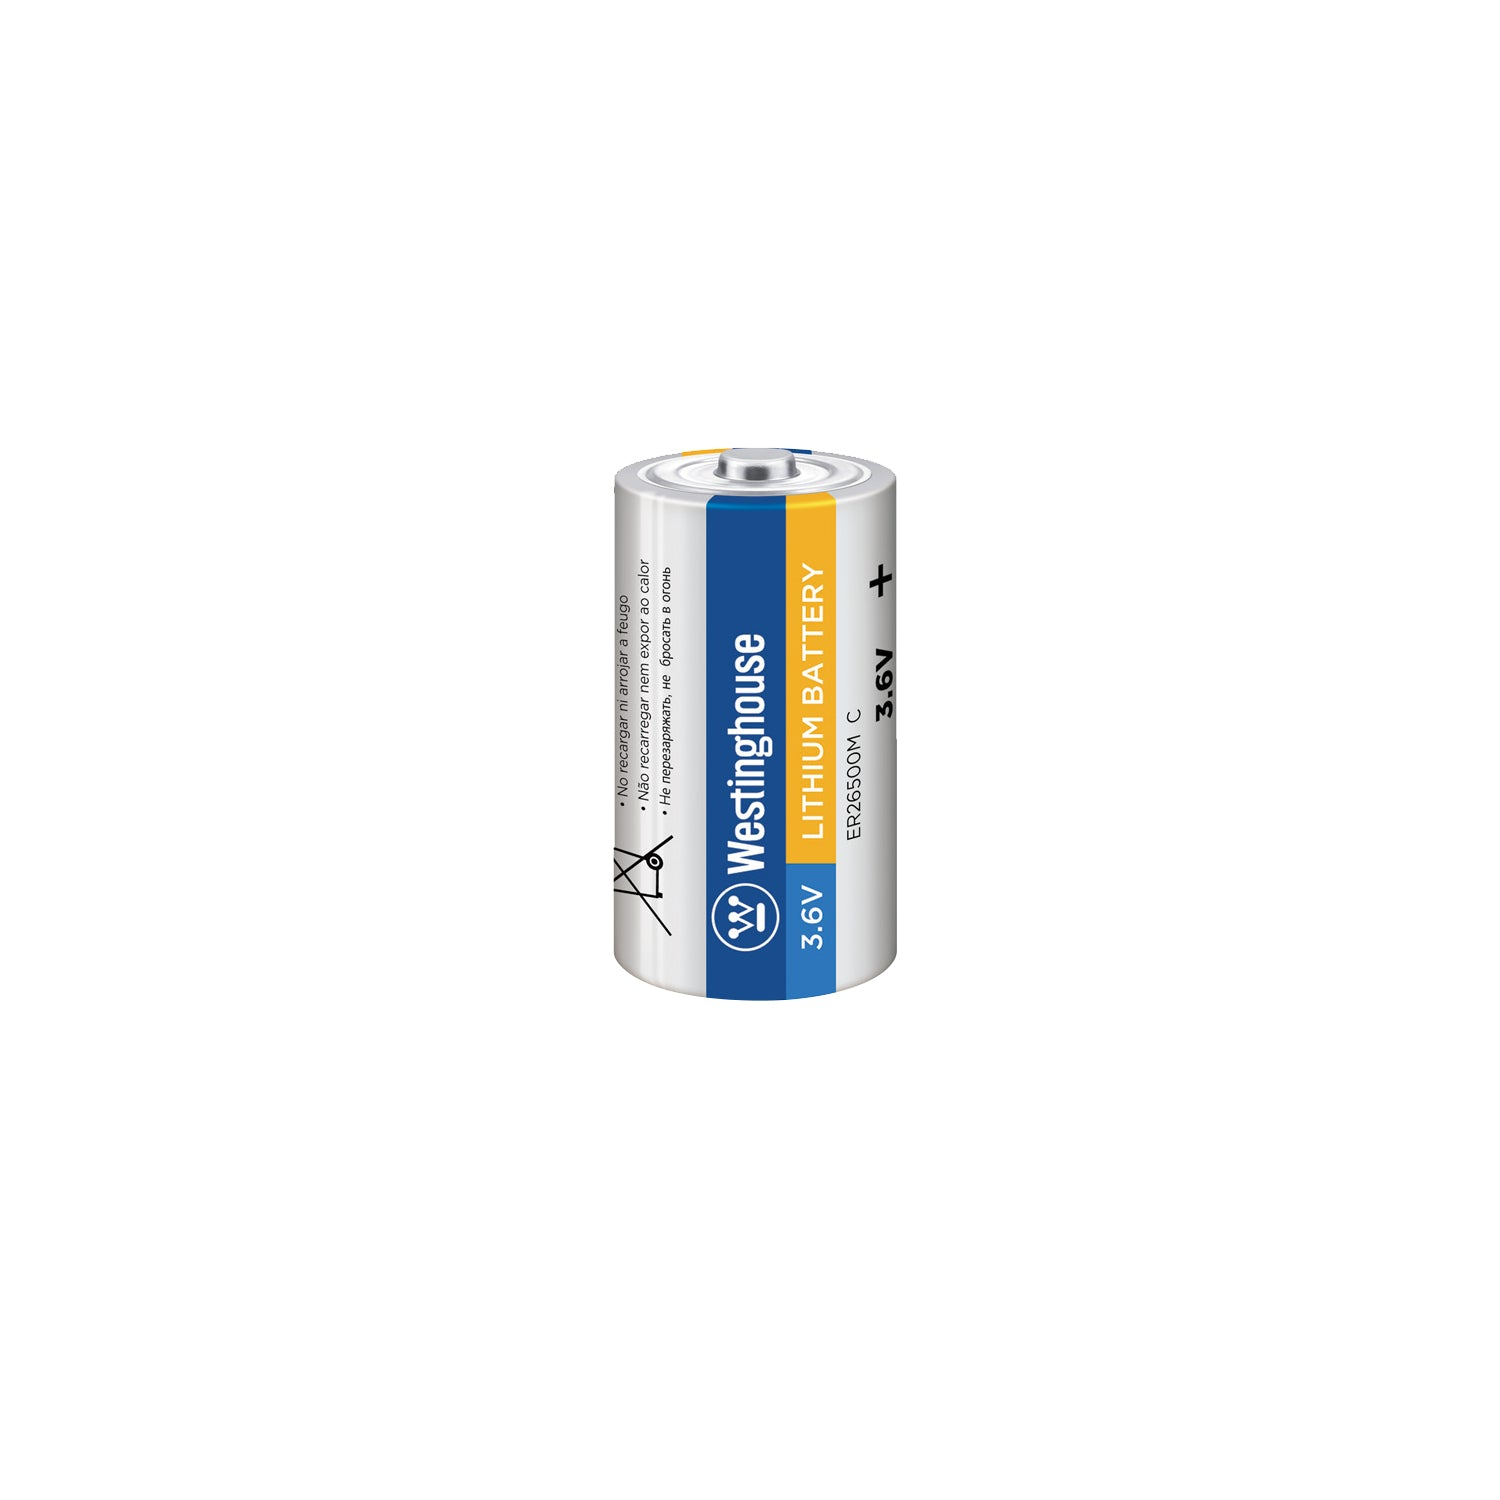 ER26500 C Size 3.6V Lithium Primary Battery for Specialized Devices Bulk